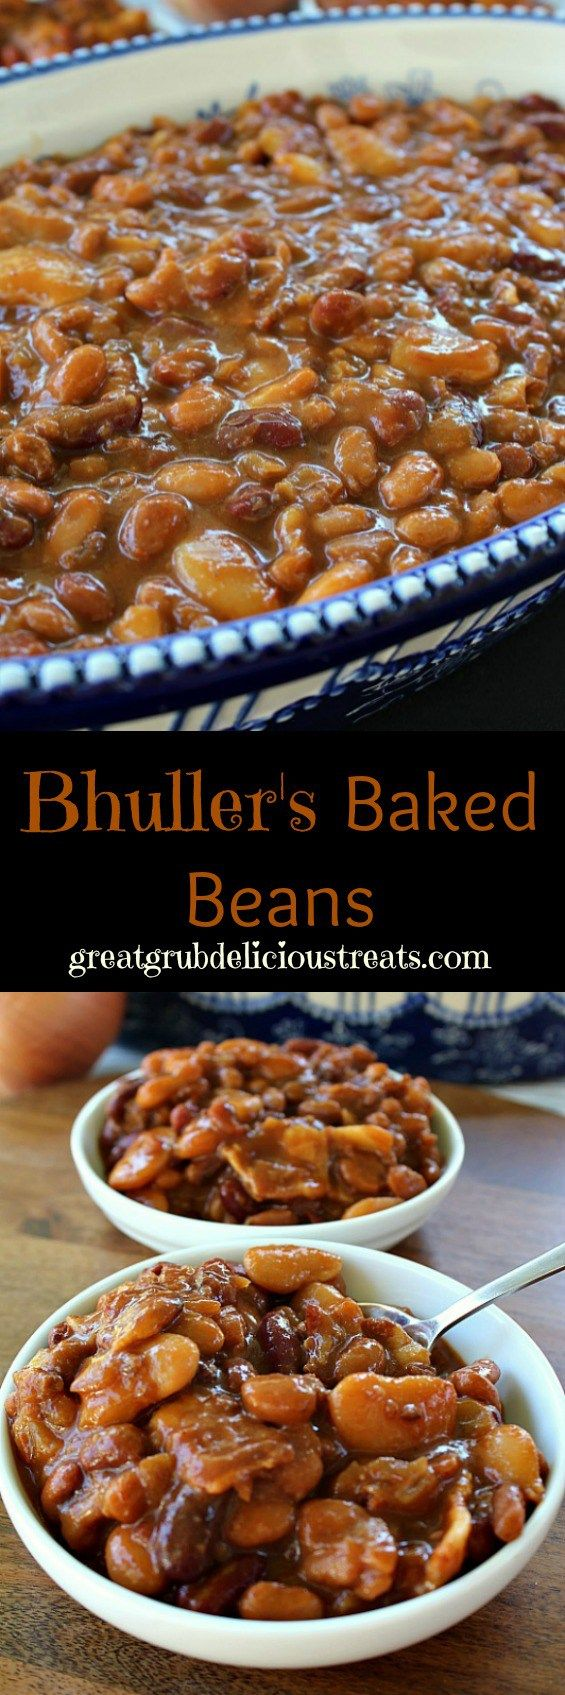 Bhuller's Baked Beans - will make again! Didn't ad corn syrup. Added a little worchestershire. Cut bacon in half and laid on top while baking. Used dark kidney beans, baby butter beans, small pork and beans and large Bush's original baked beans. ~Suz